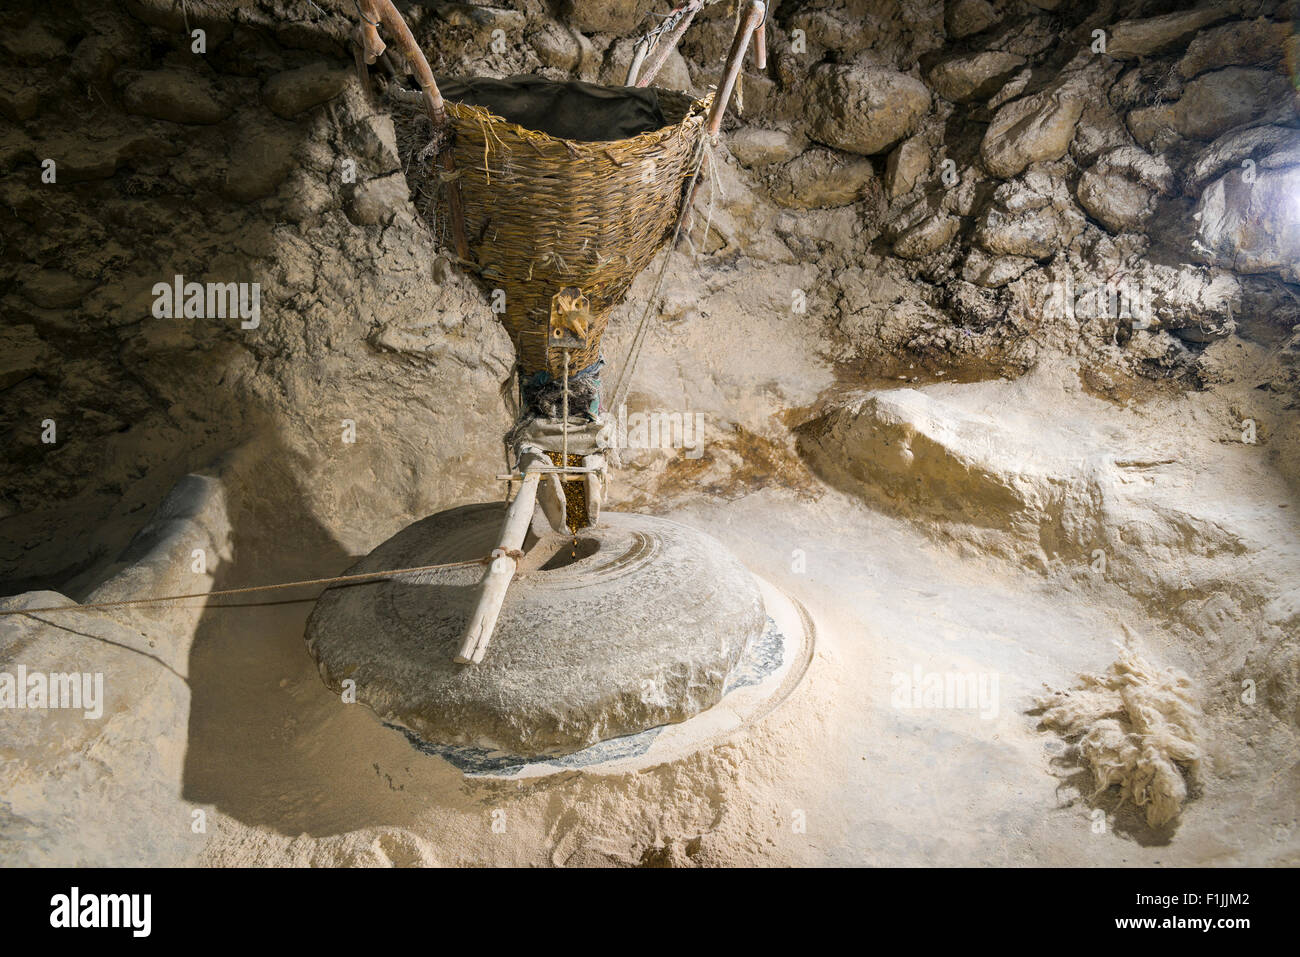 A simple grain mill used by the local farmers, Rumtse, Jammu and Kashmir, India - Stock Image